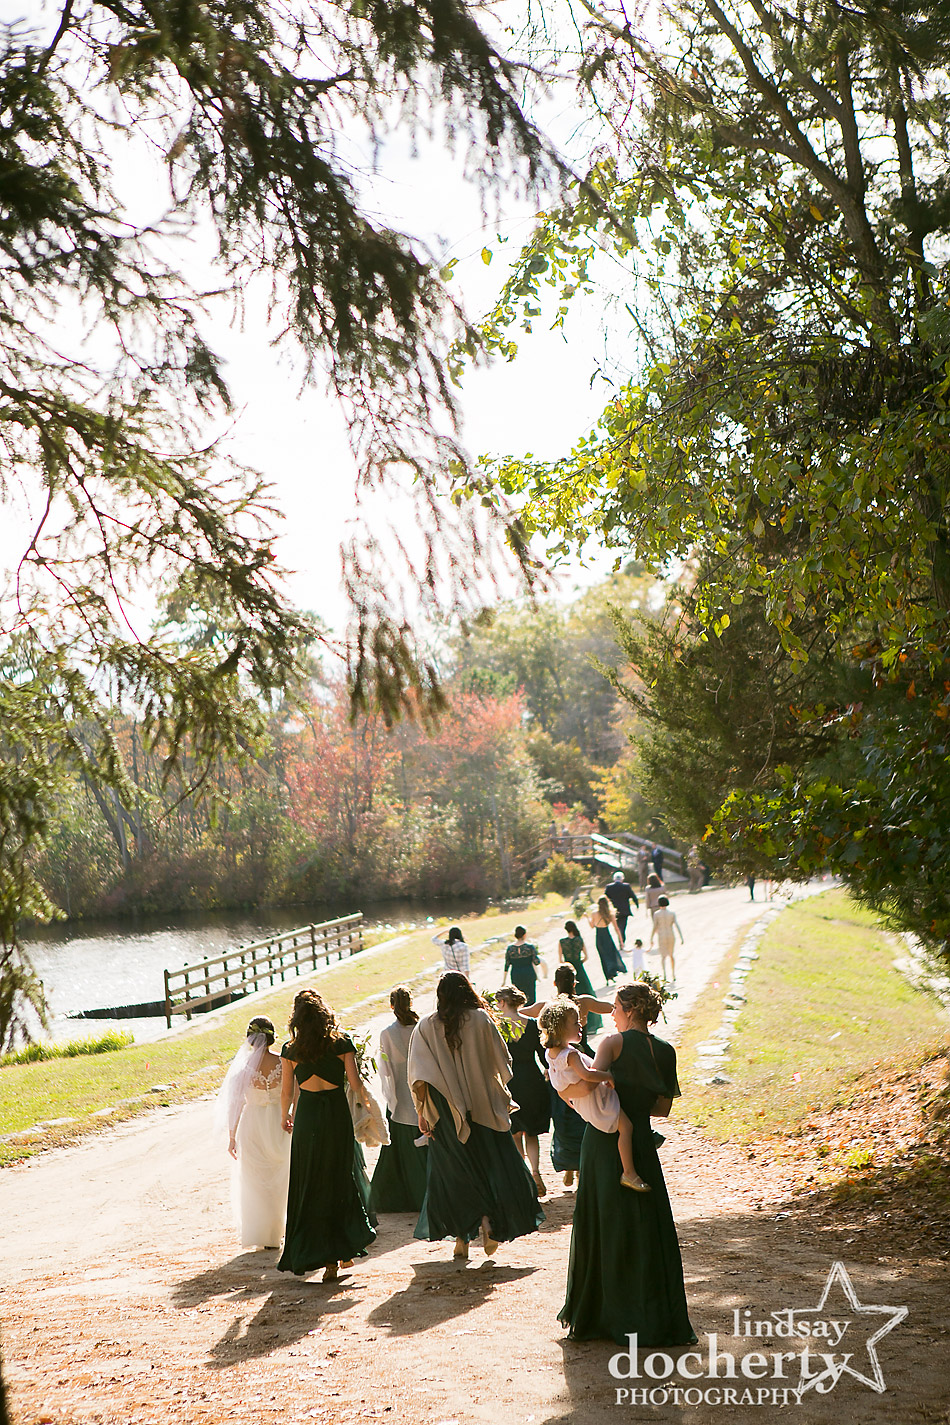 bridesmaids-walking-to-wedding-ceremony-at-camp-ockanickon-in-new-jersey